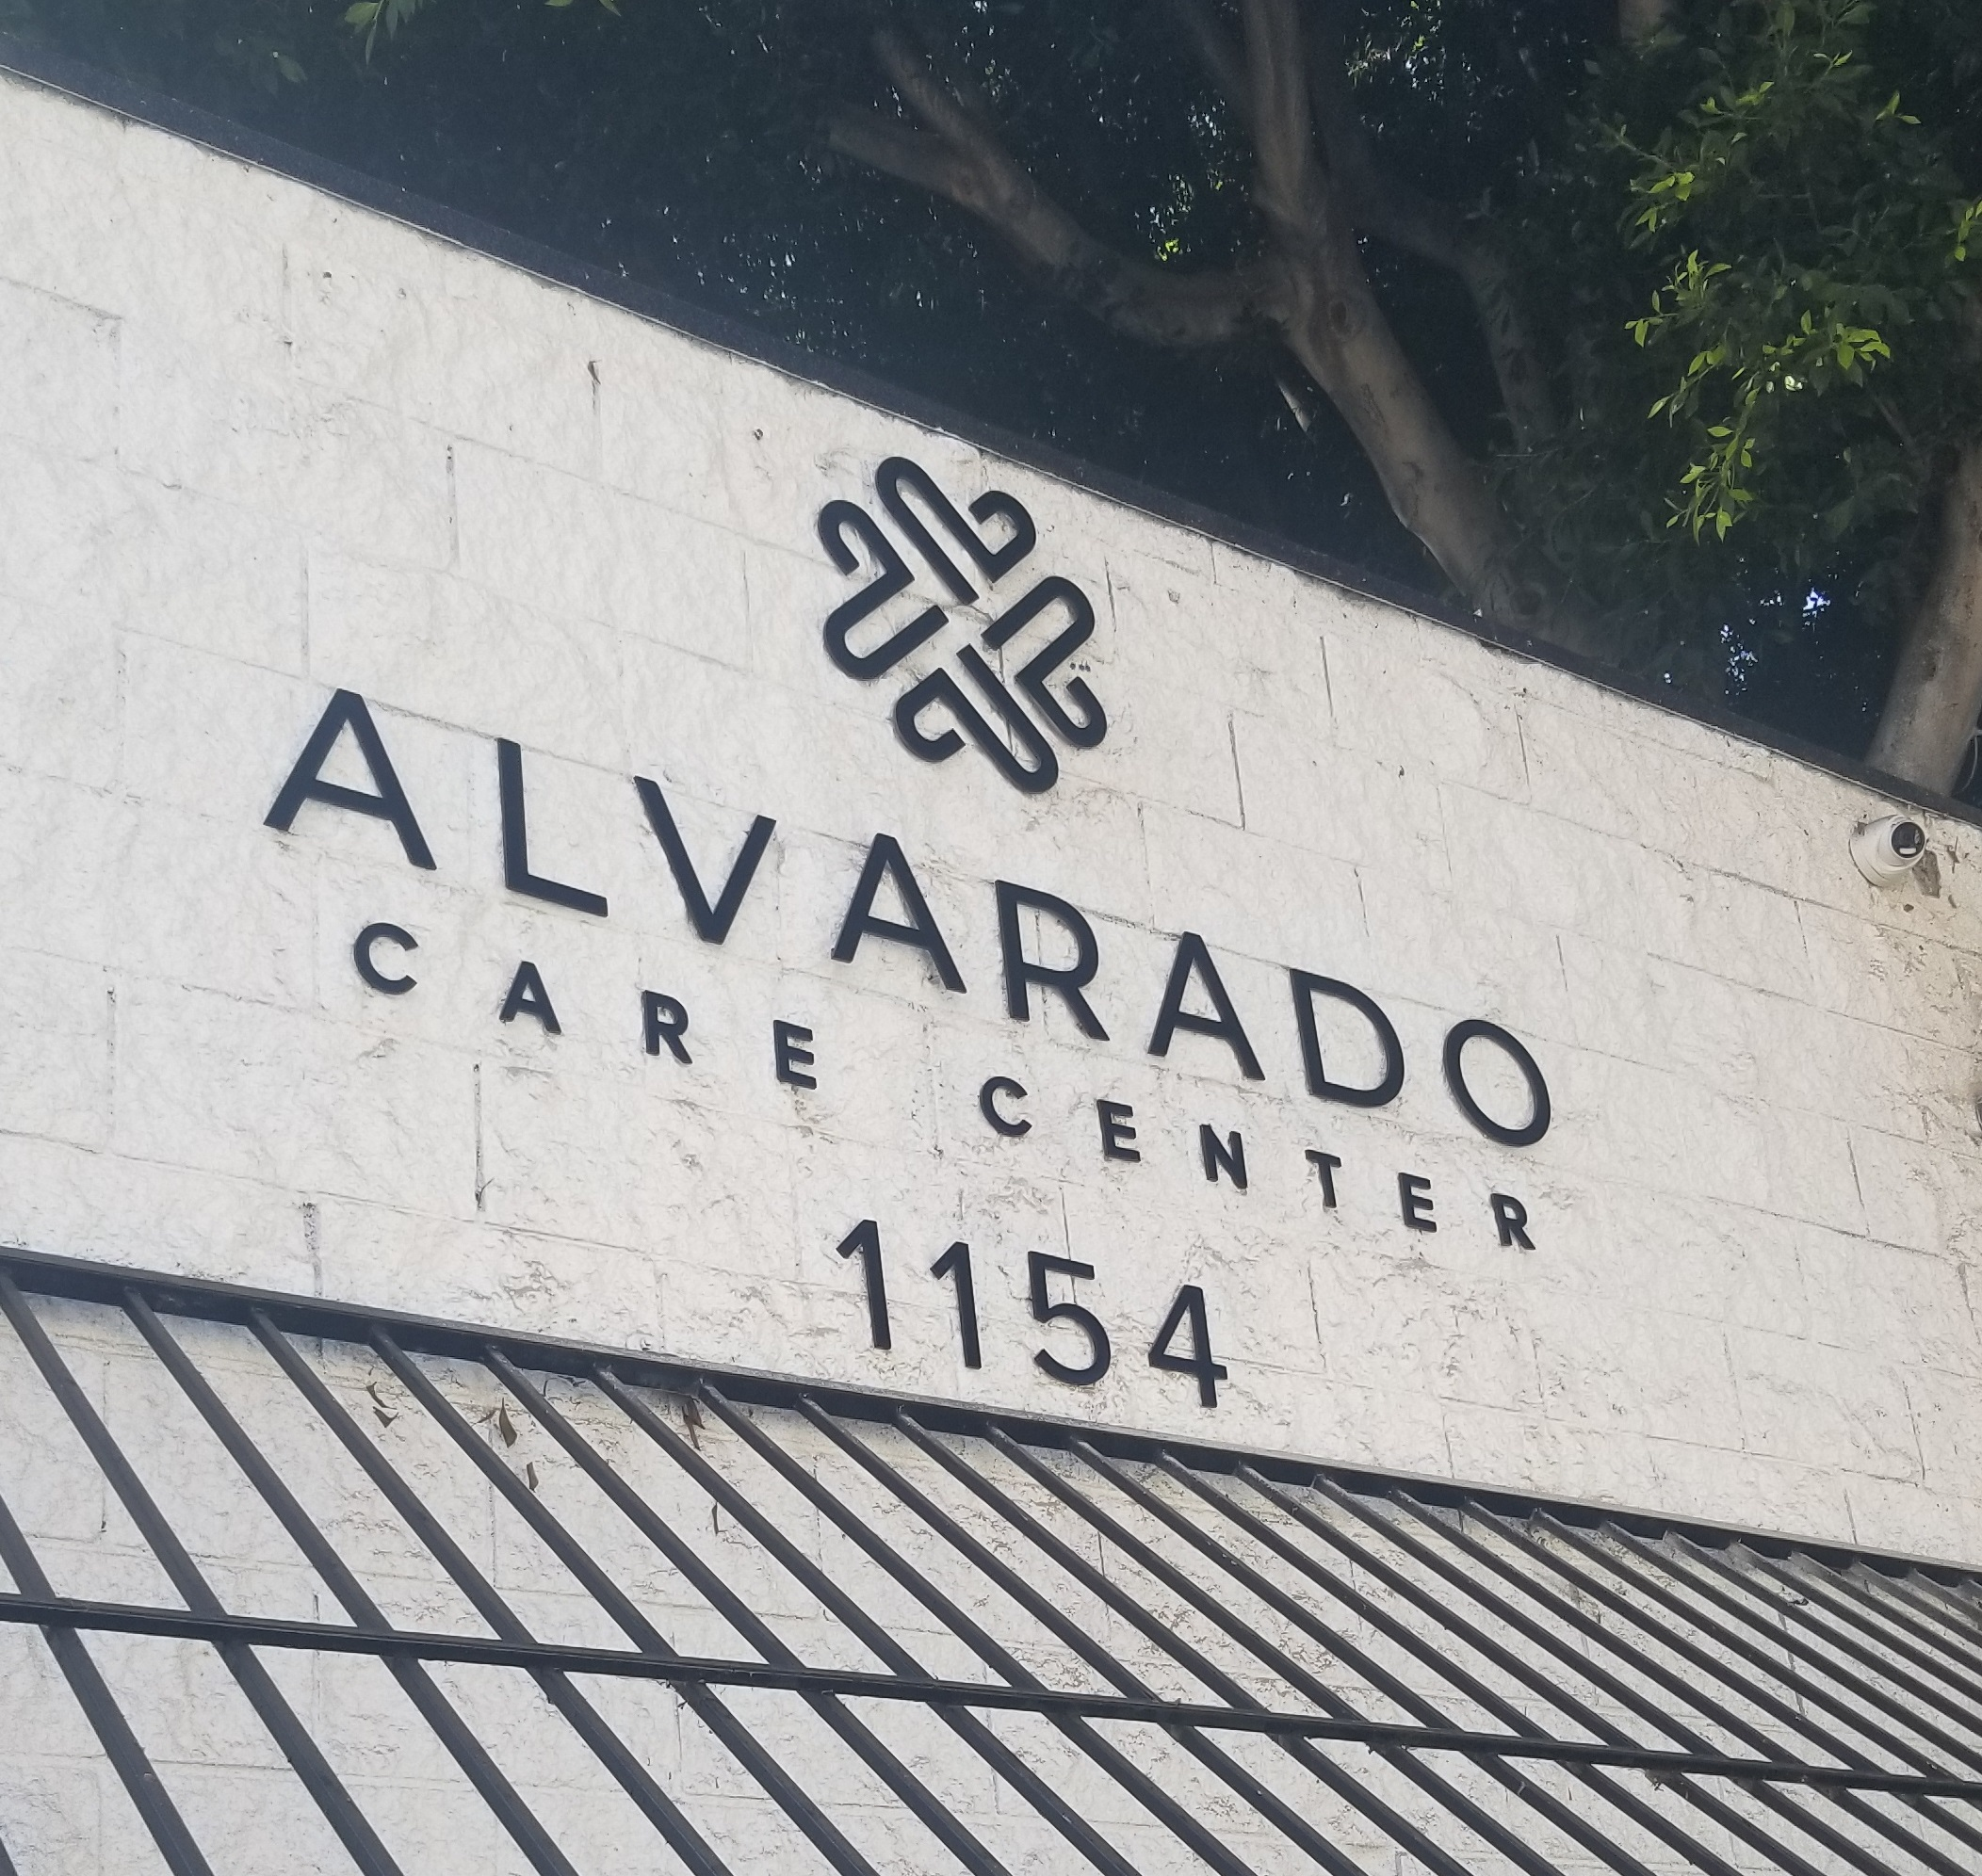 Project quality of your staff and services with impeccable signage, like the clinic dimensional lettering we installed for Alvarado Care Center in Los Angeles.